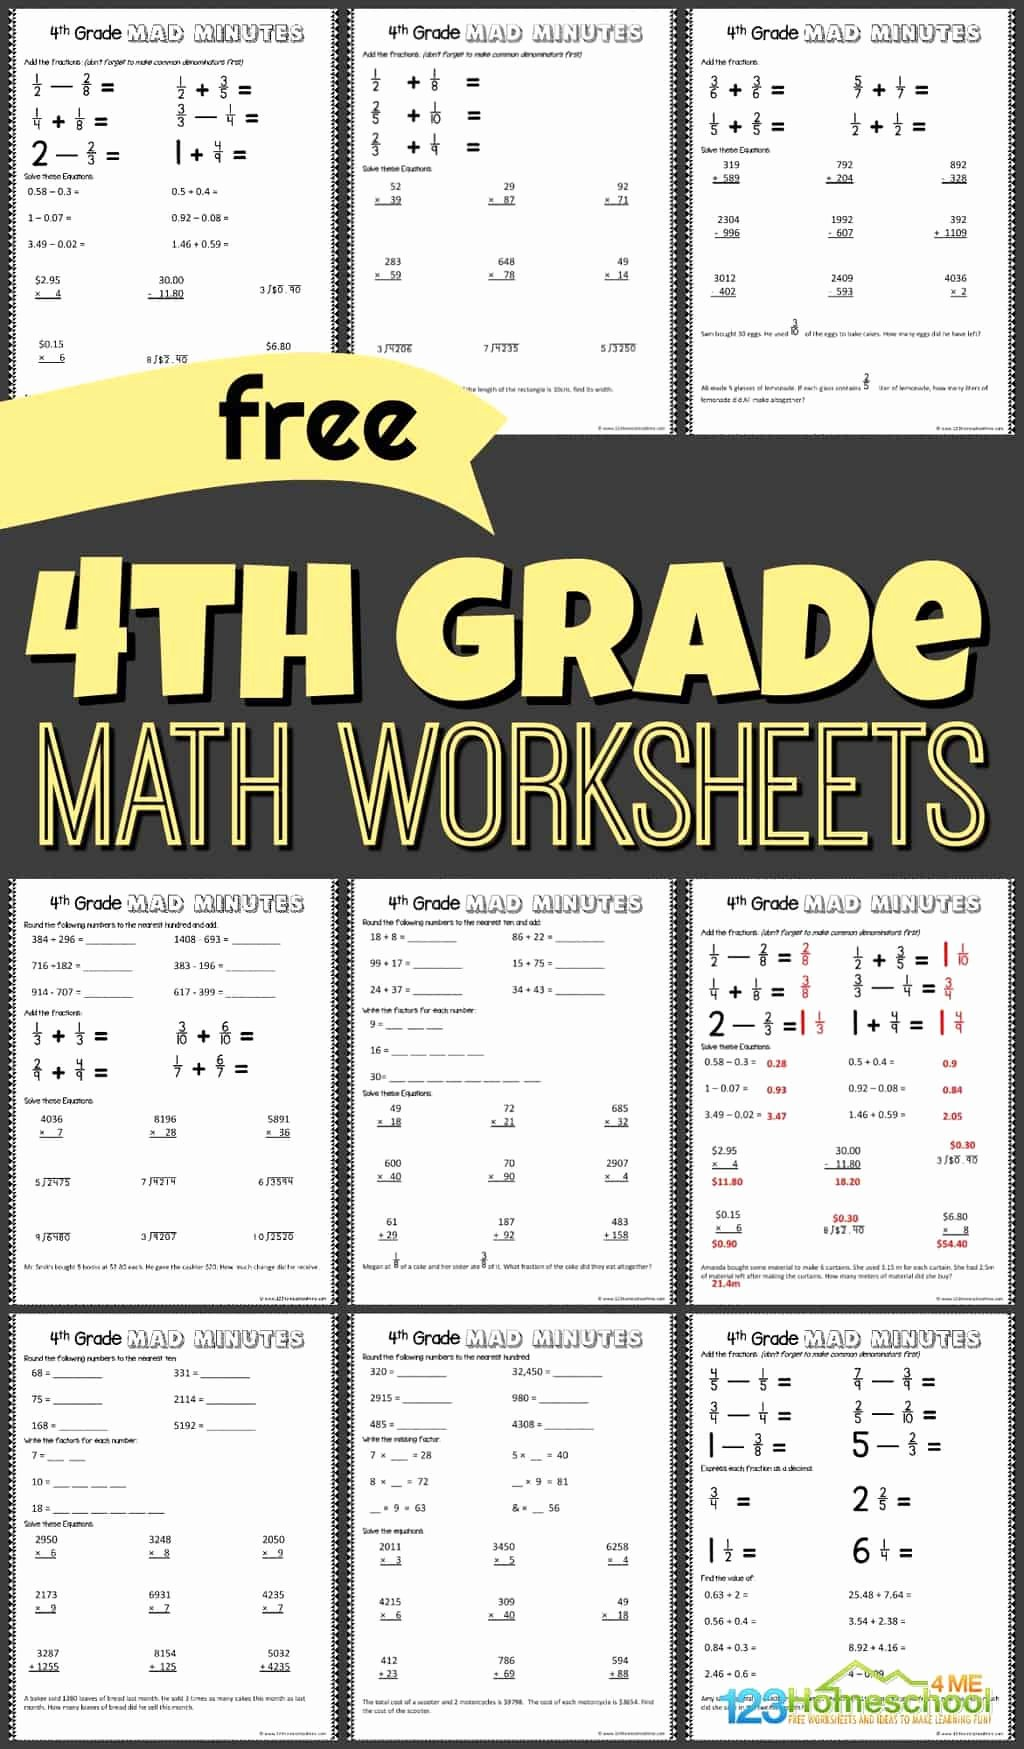 Break Apart Multiplication Worksheets 3rd Grade Awesome Math Worksheet Math Worksheet How to Break Apart Multi